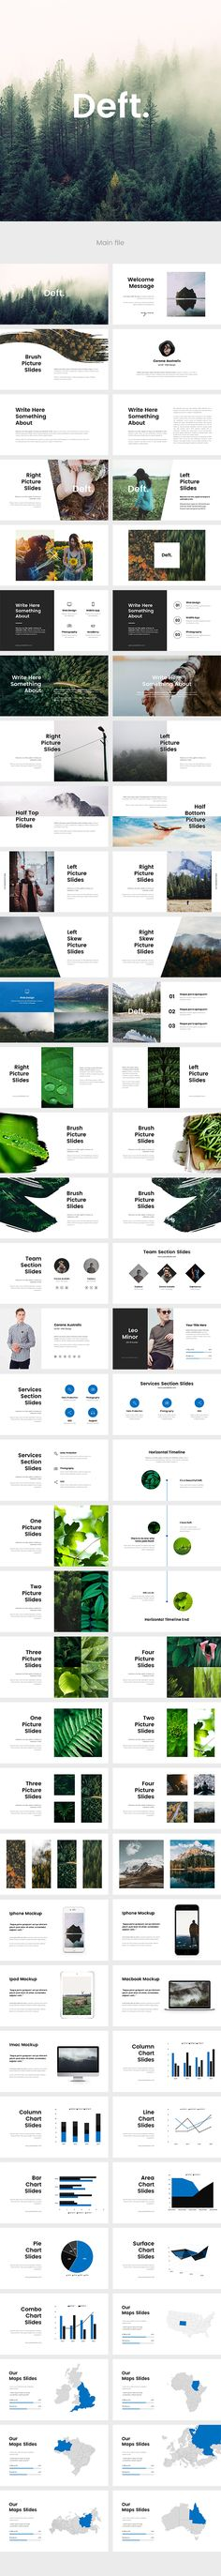 Deft Powerpoint Presentation — Powerpoint PPT #modern #template • Download ➝ https://graphicriver.net/item/deft-powerpoint-presentation/20418846?ref=pxcr